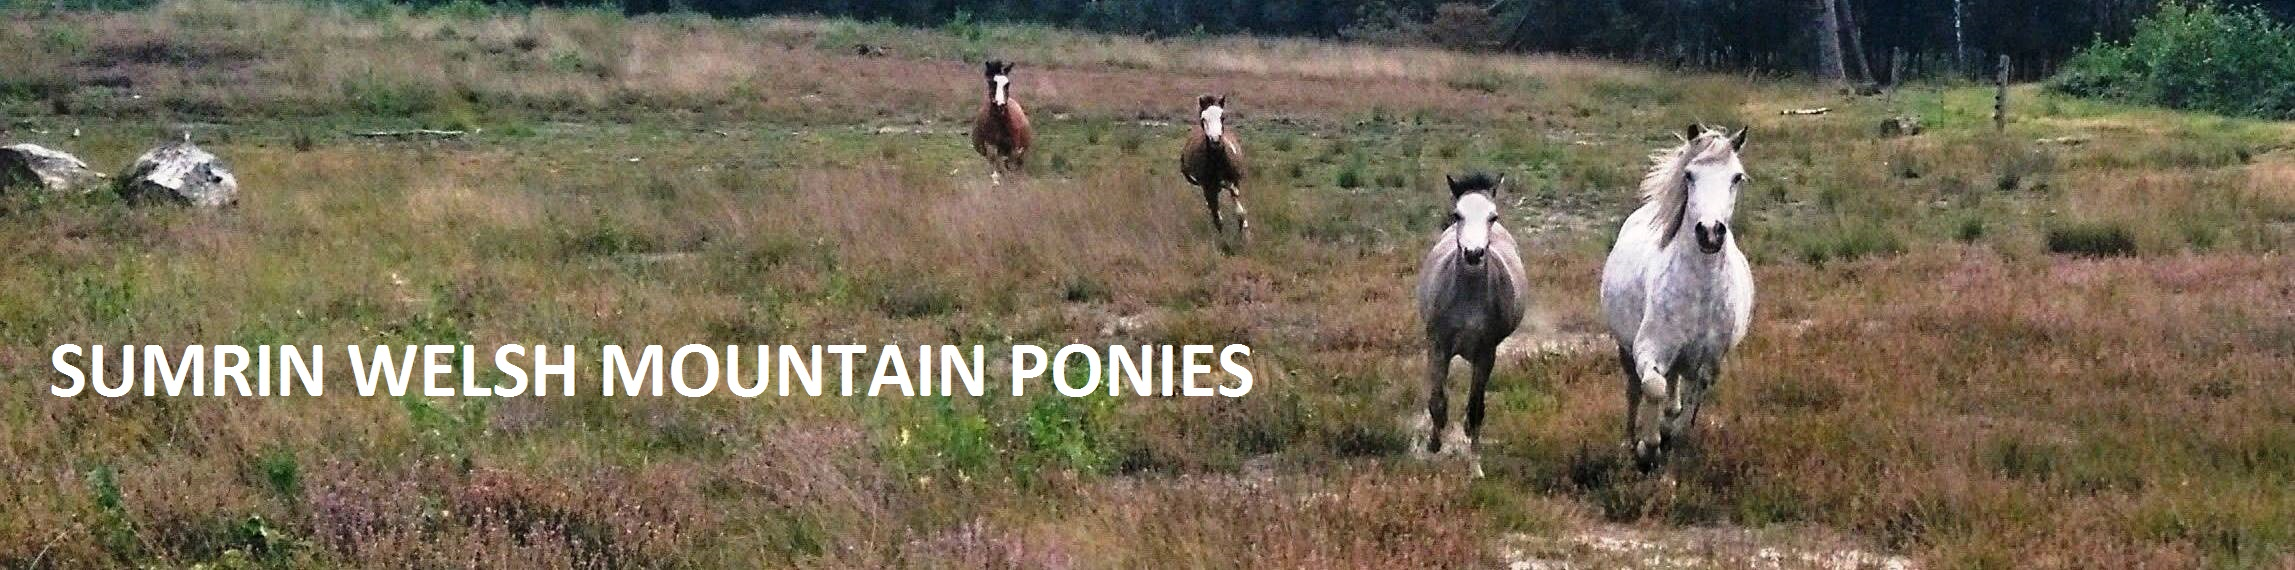 Sumrin Welsh Mountain Ponies